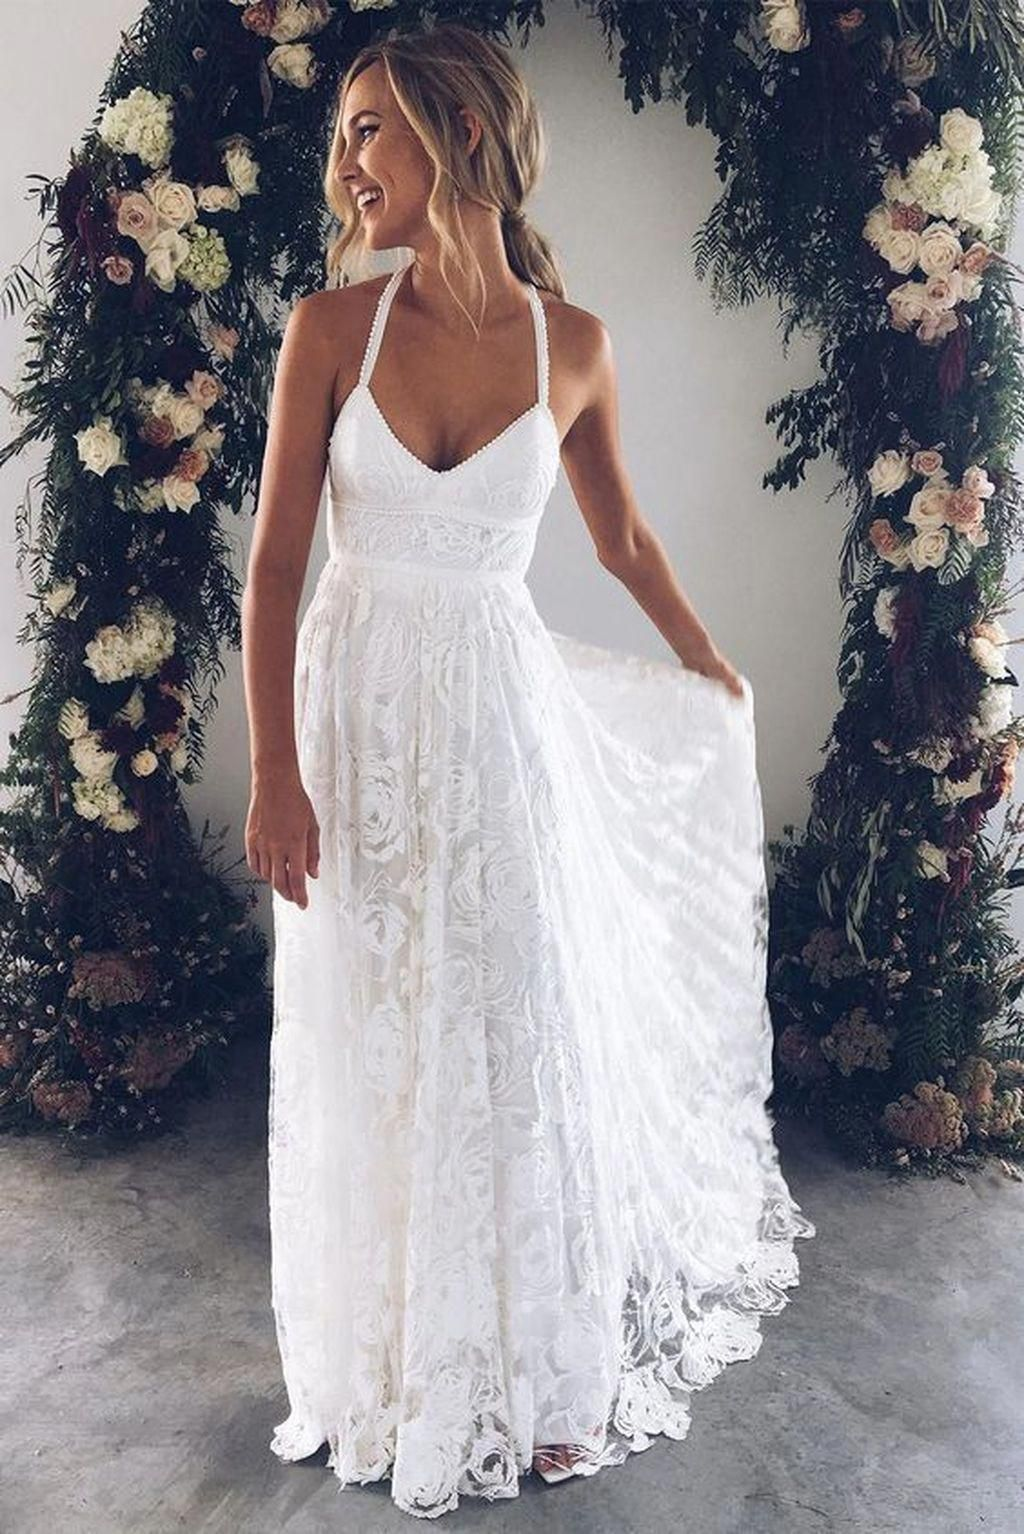 Classic Wedding Dress For Aire Boho Collection 10 in 10 (mit